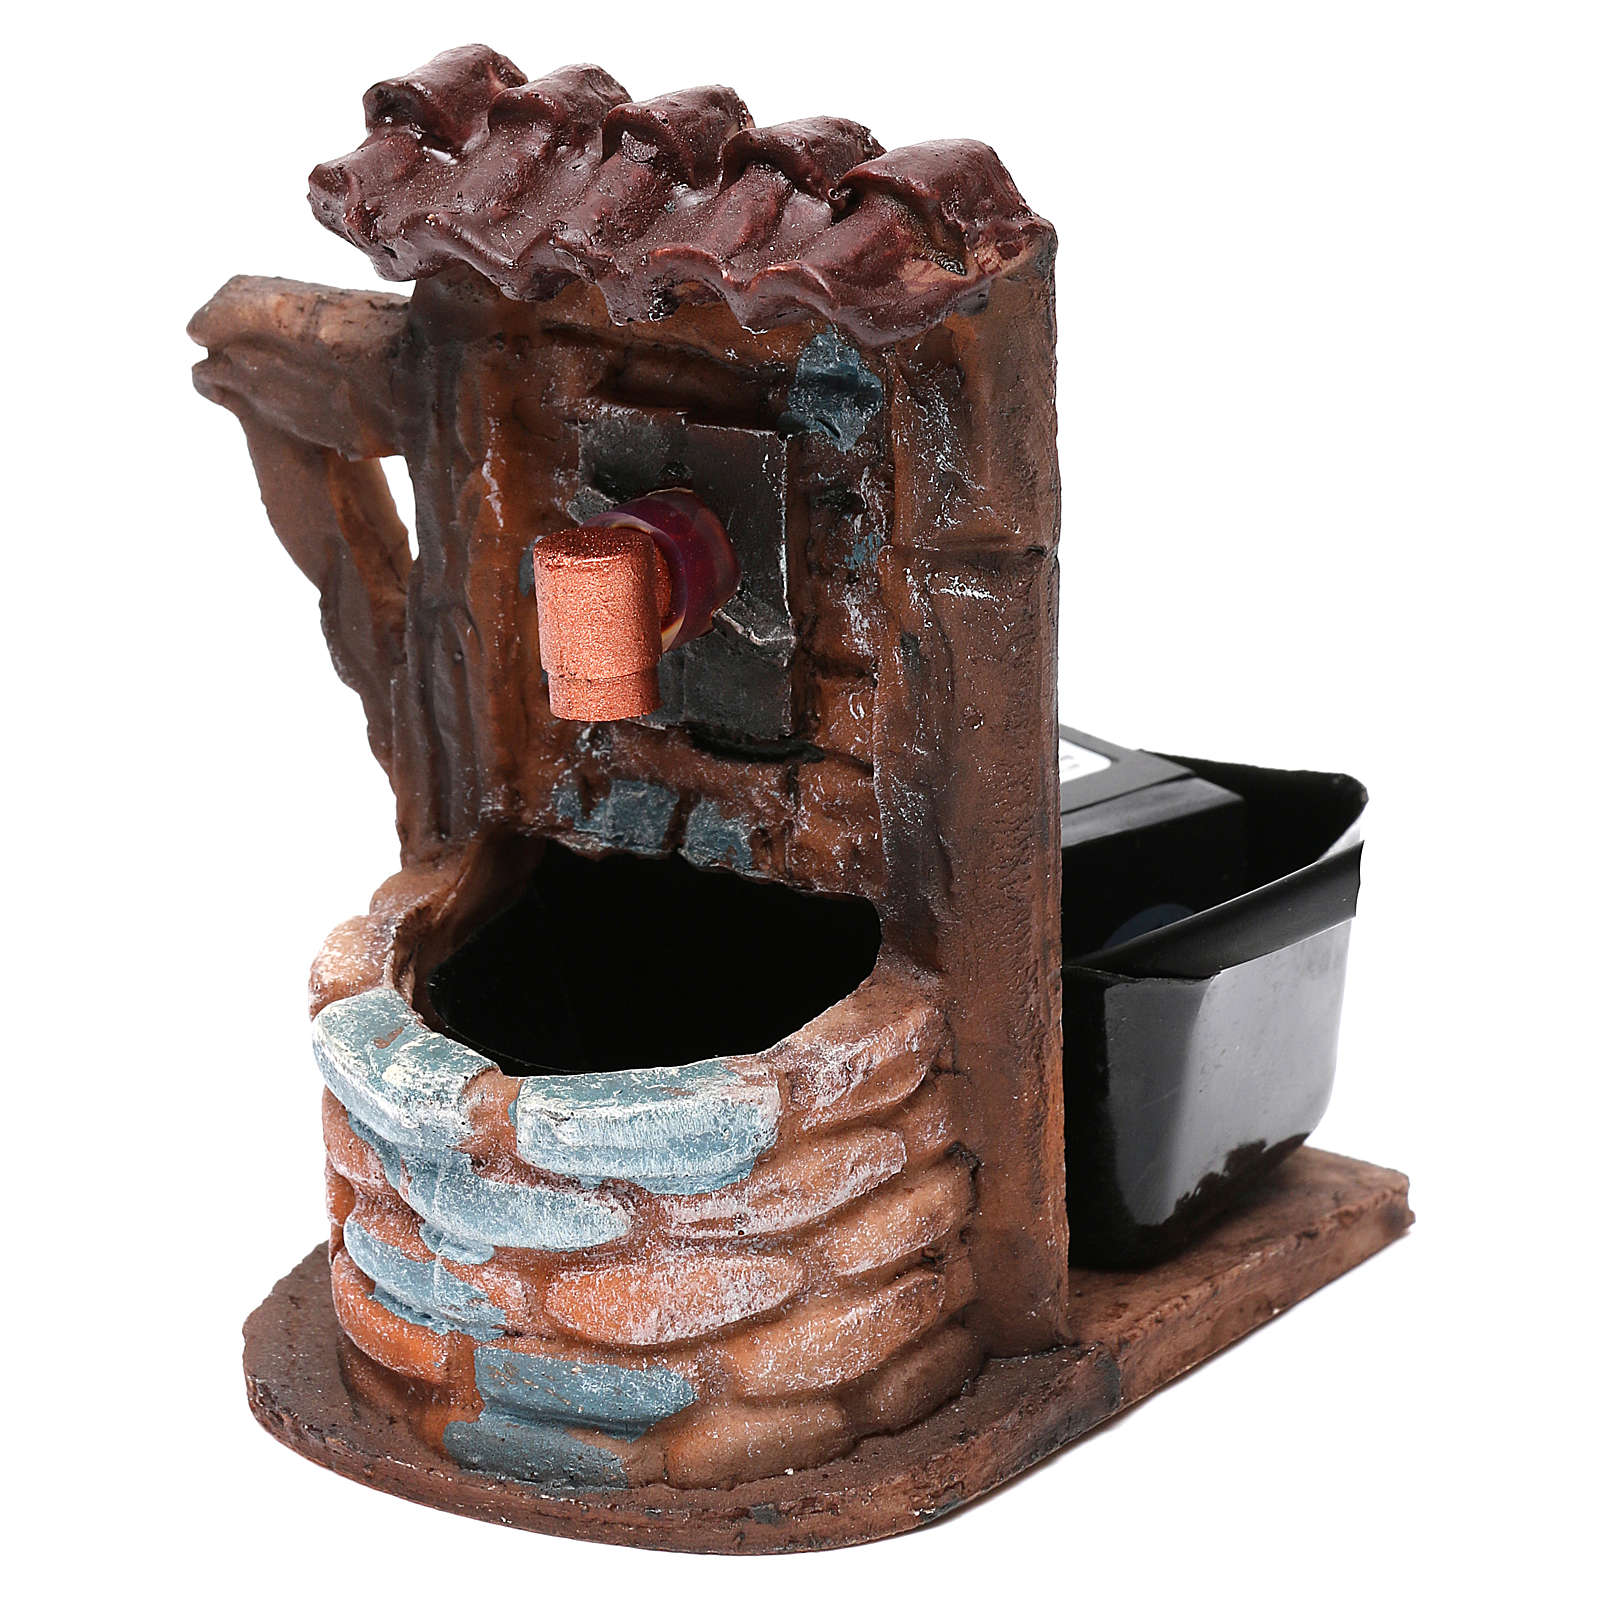 Nativity accessory, water fountain with bricks 9x7x10 cm 4